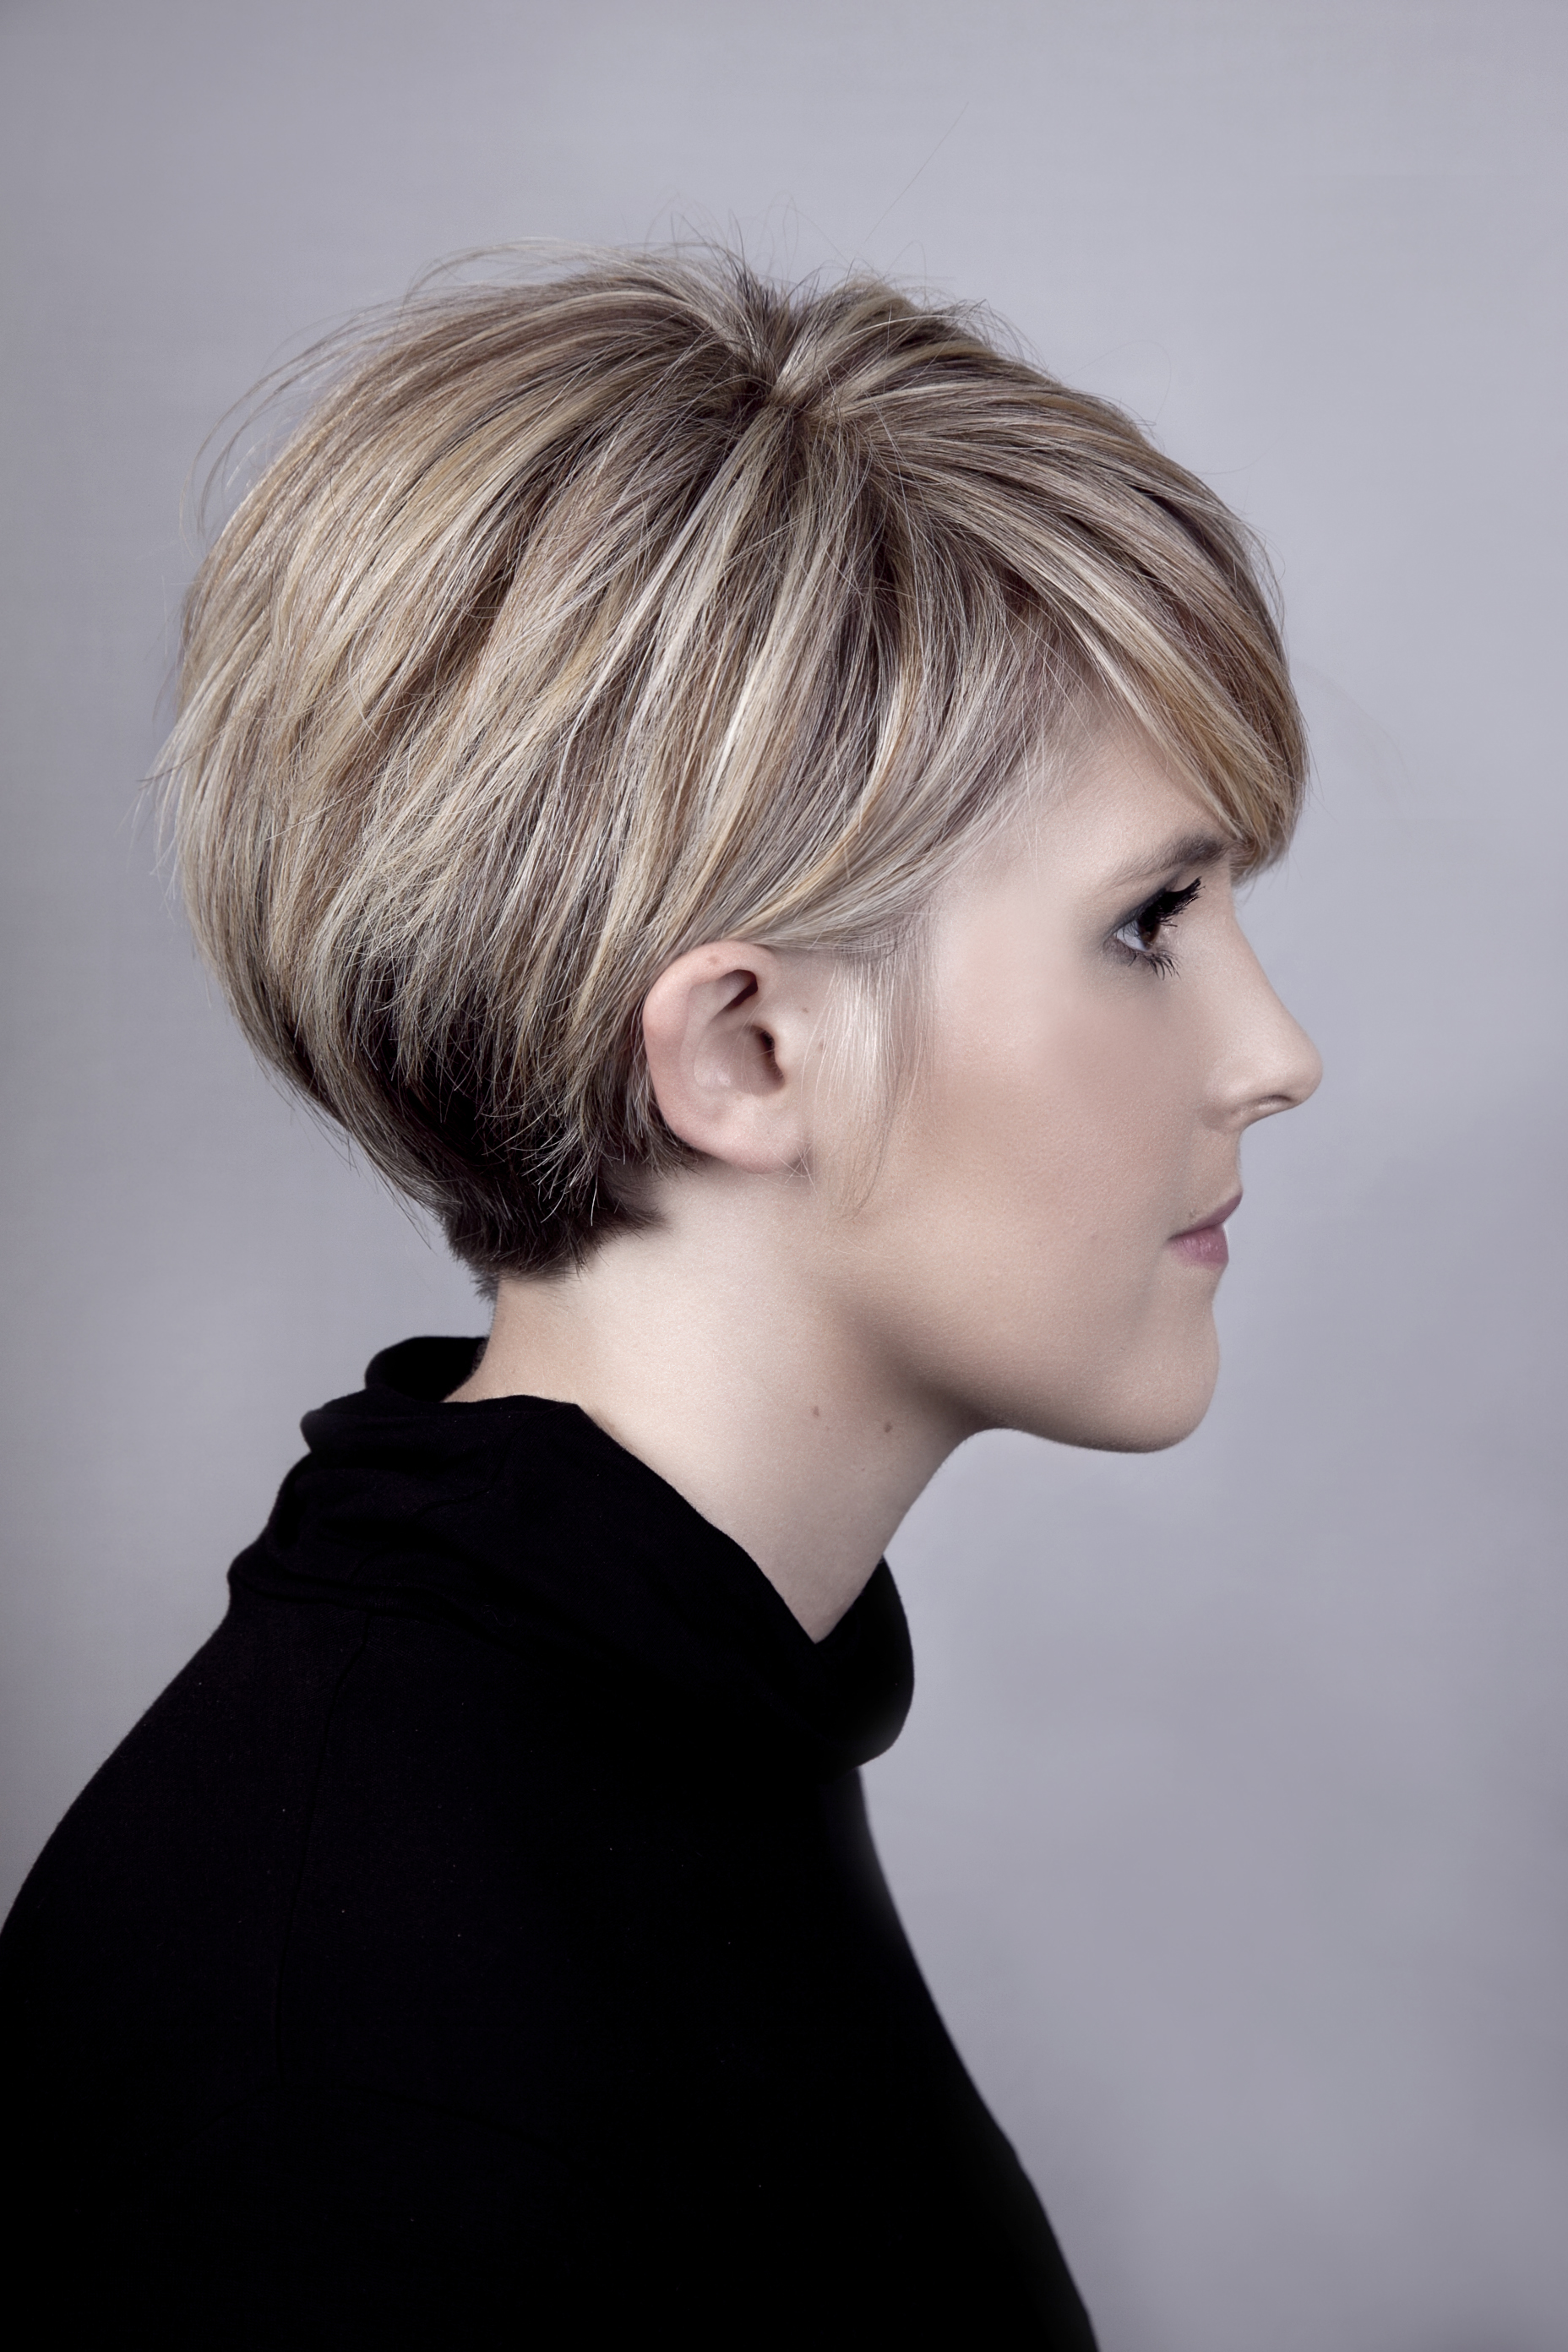 Short blonde hair cut